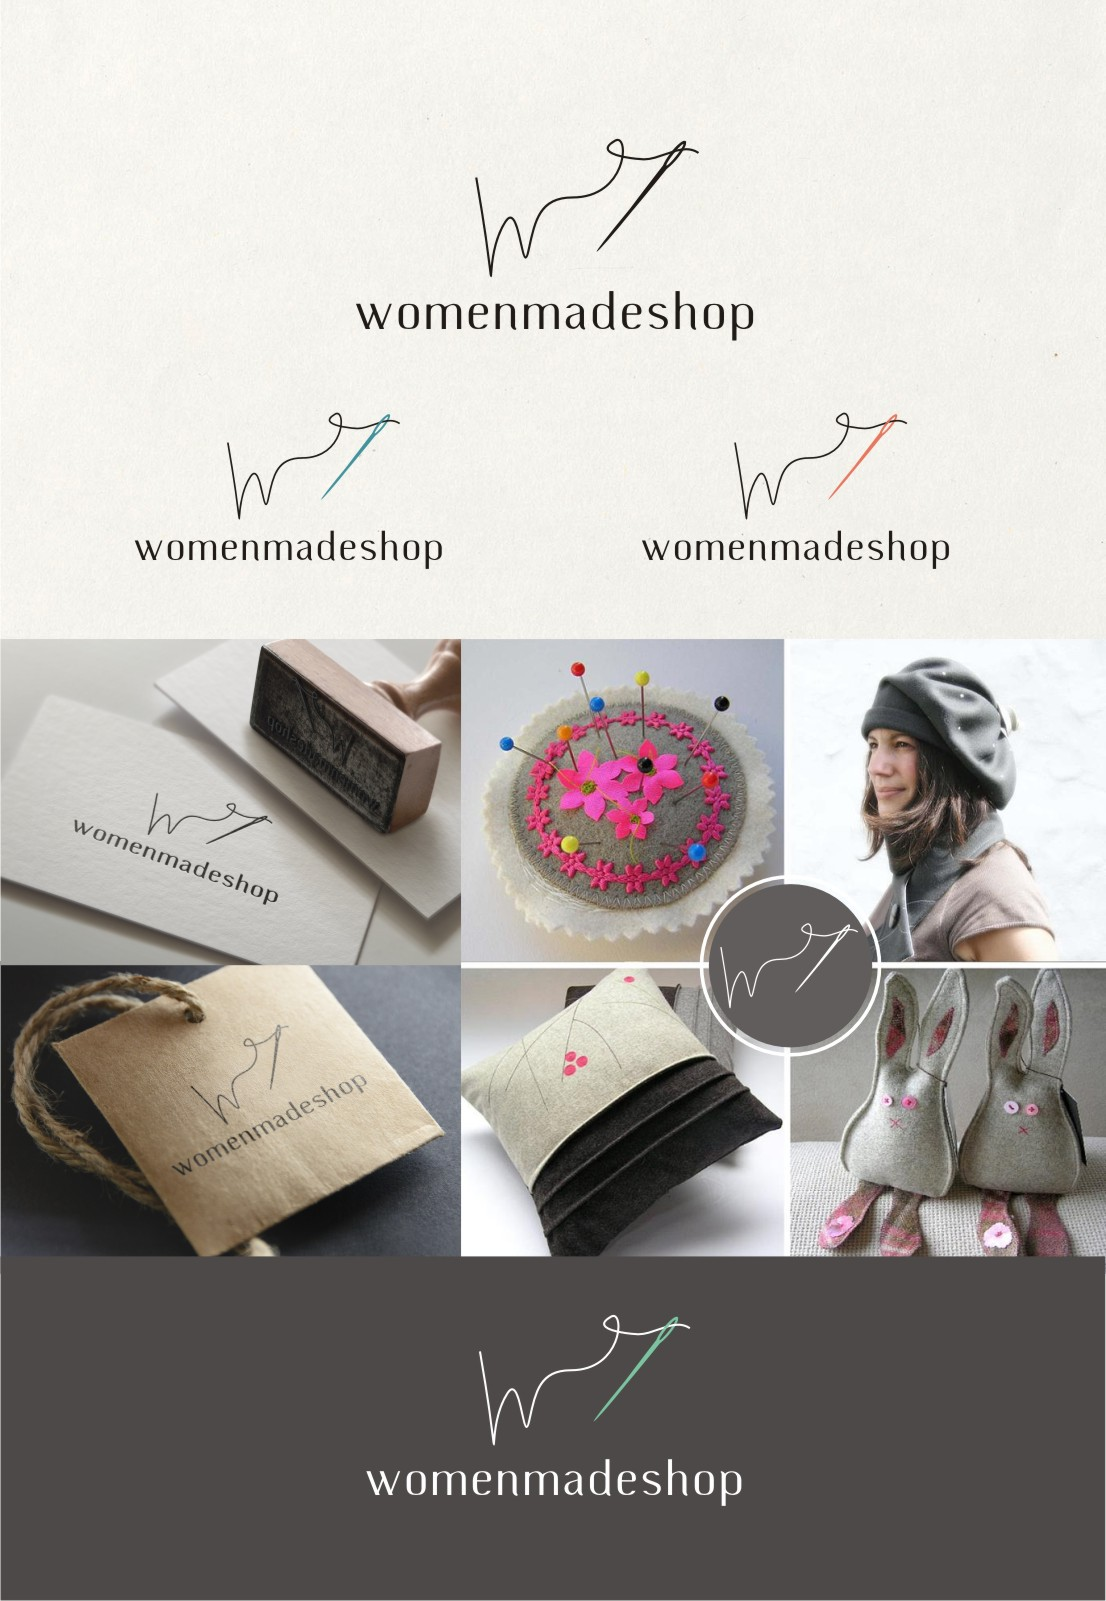 Create a logo for a unique shop that sells products from women all over the world.